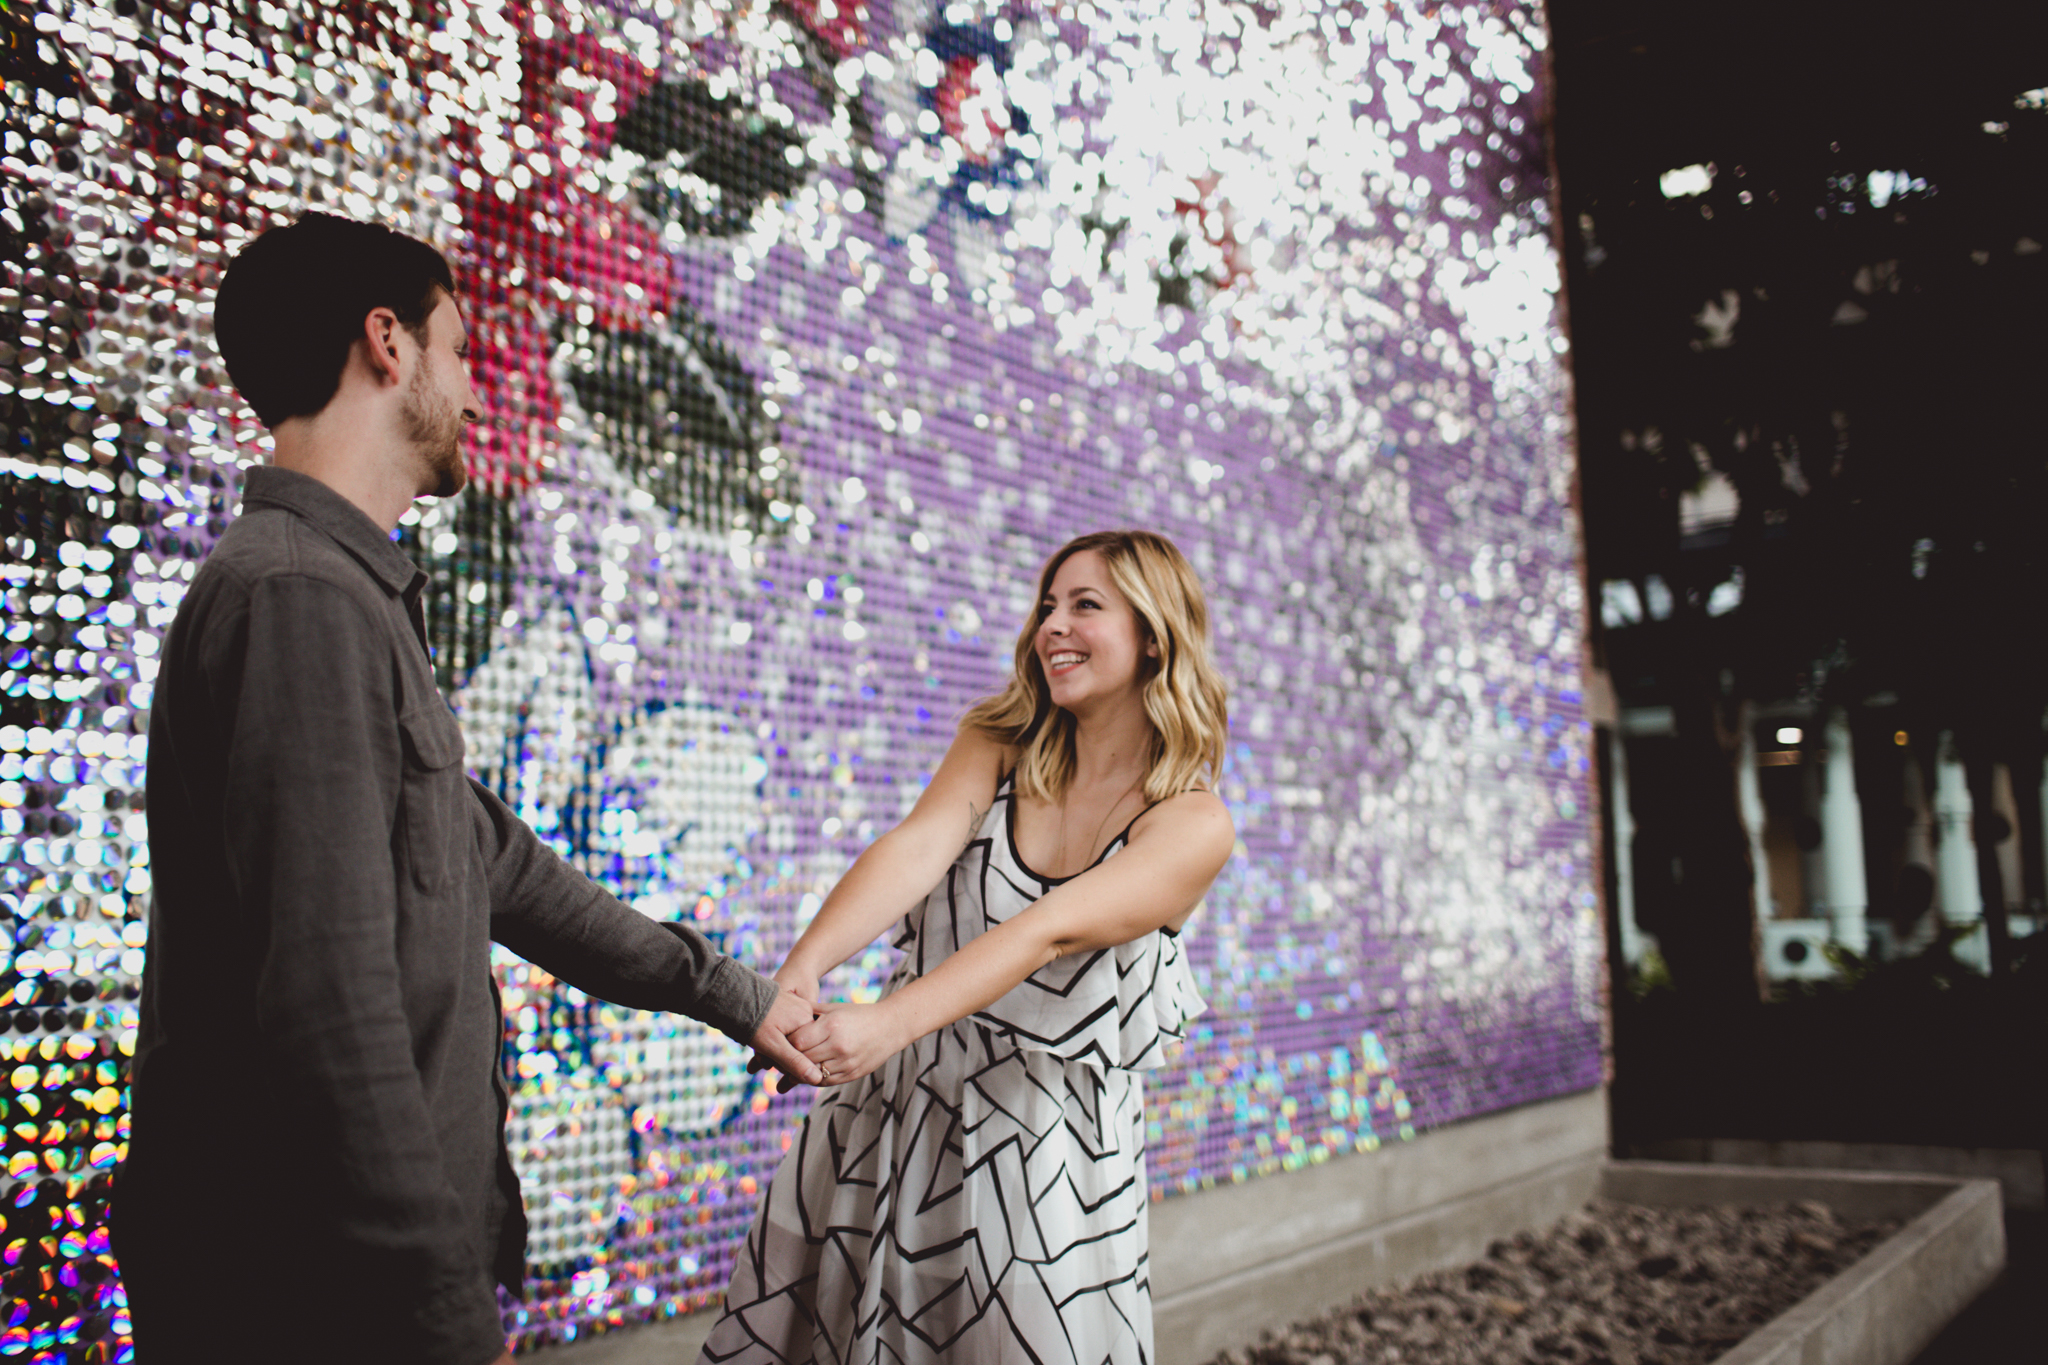 Cambria_Philly_Engagement_Photography-7531.jpg